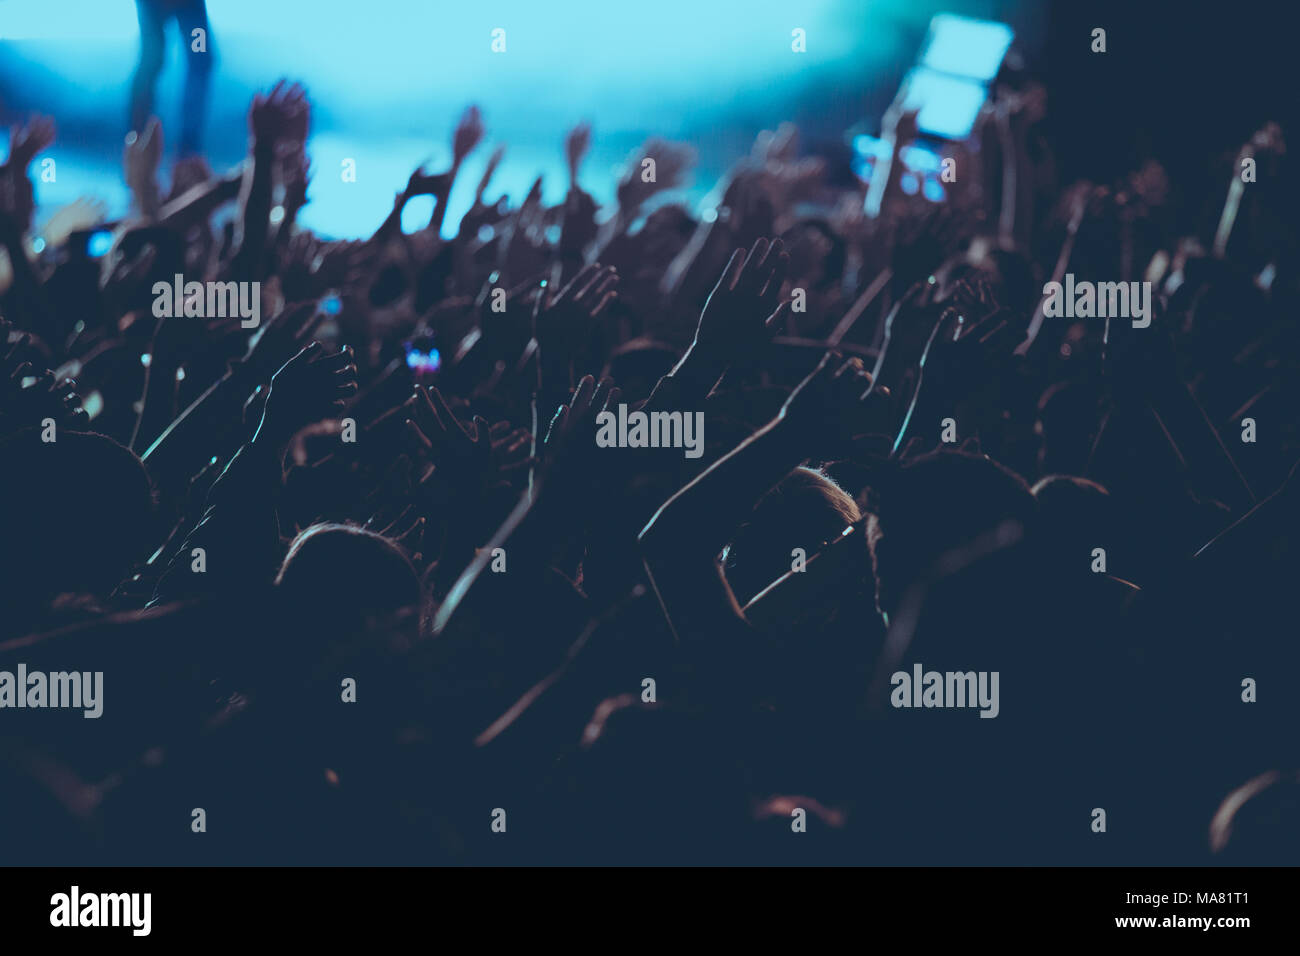 Silhouette of crowd in live concert. - Stock Image